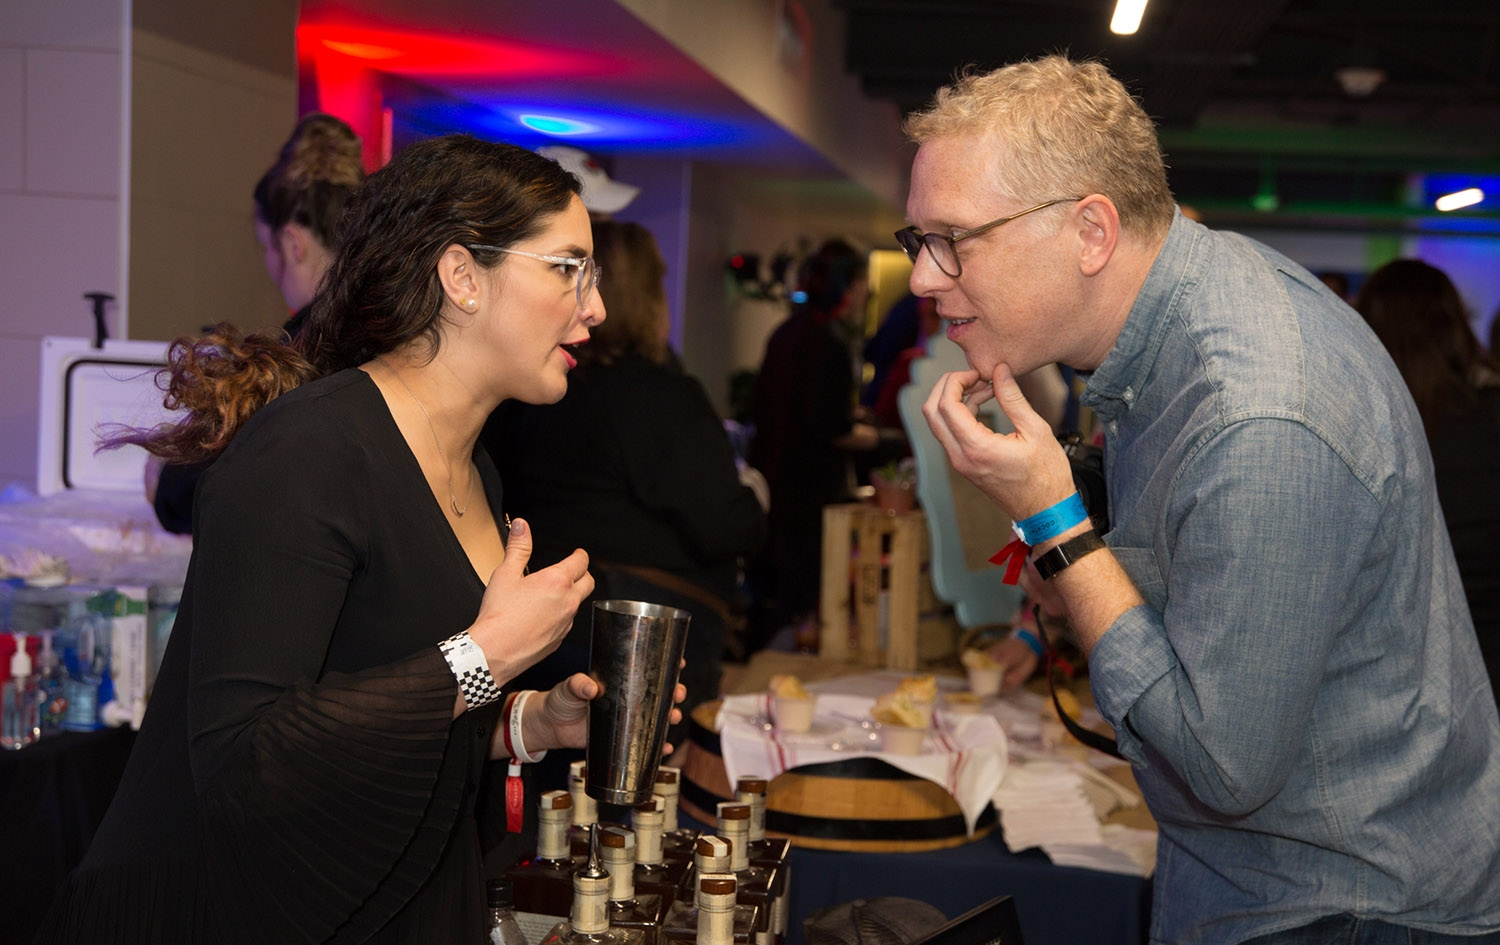 Come & Taste It! event kicks off the 2019 San Antonio Cocktail Festival Thursday night at Battle for Texas: The Experience at Rivercenter Mall.